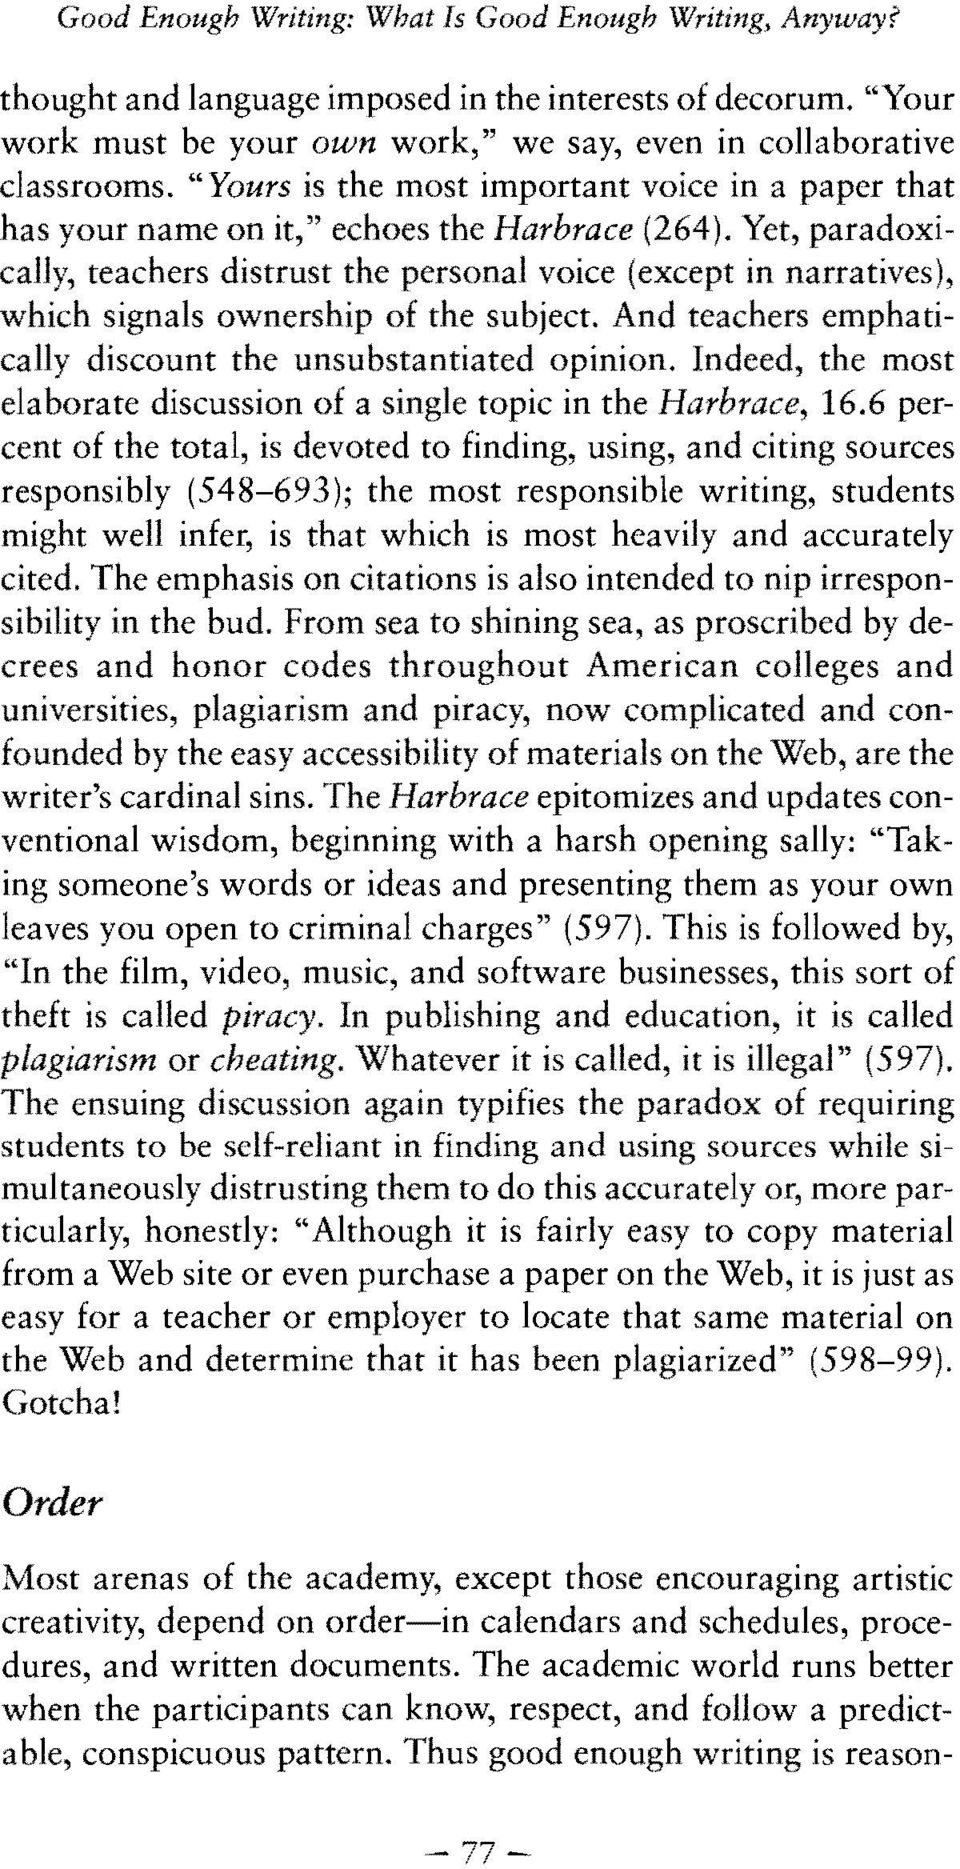 Yet, paradoxically, teachers distrust the personal voice (except in narratives), which signals ownership of the subject. And teachers emphatically discount the unsubstantiated opinion.